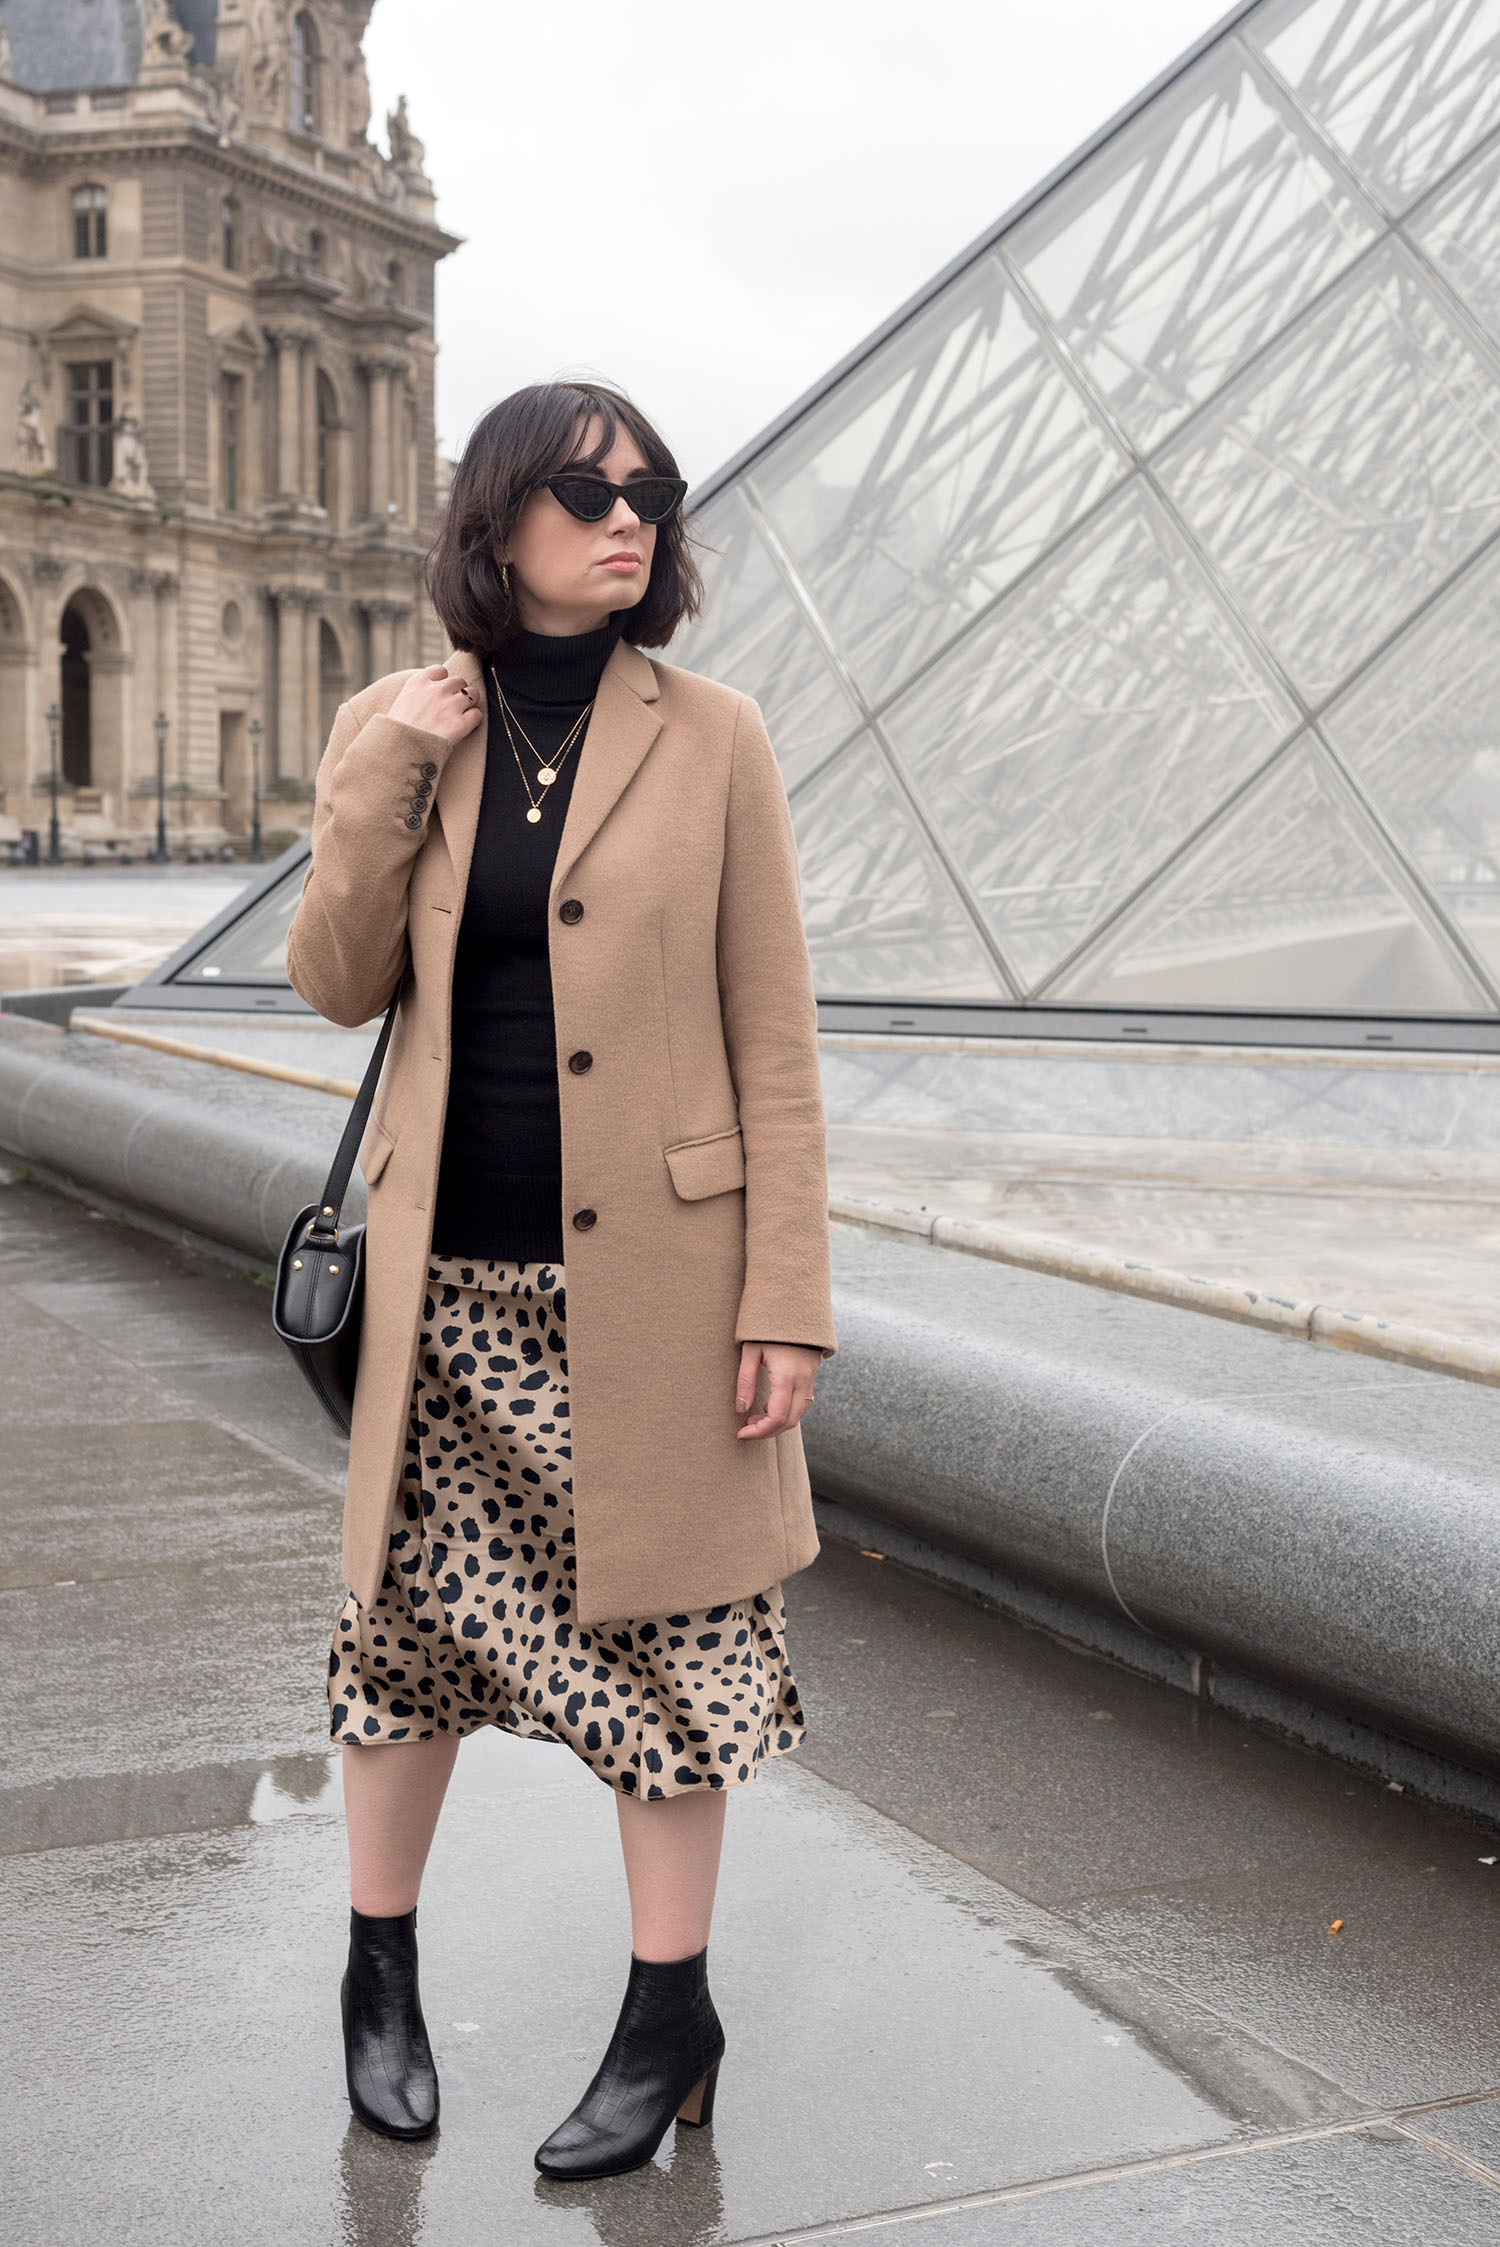 1505fe5a98f Top Canadian fashion blogger Cee Fardoe of Coco   Vera stands outside the  Louvre museum in